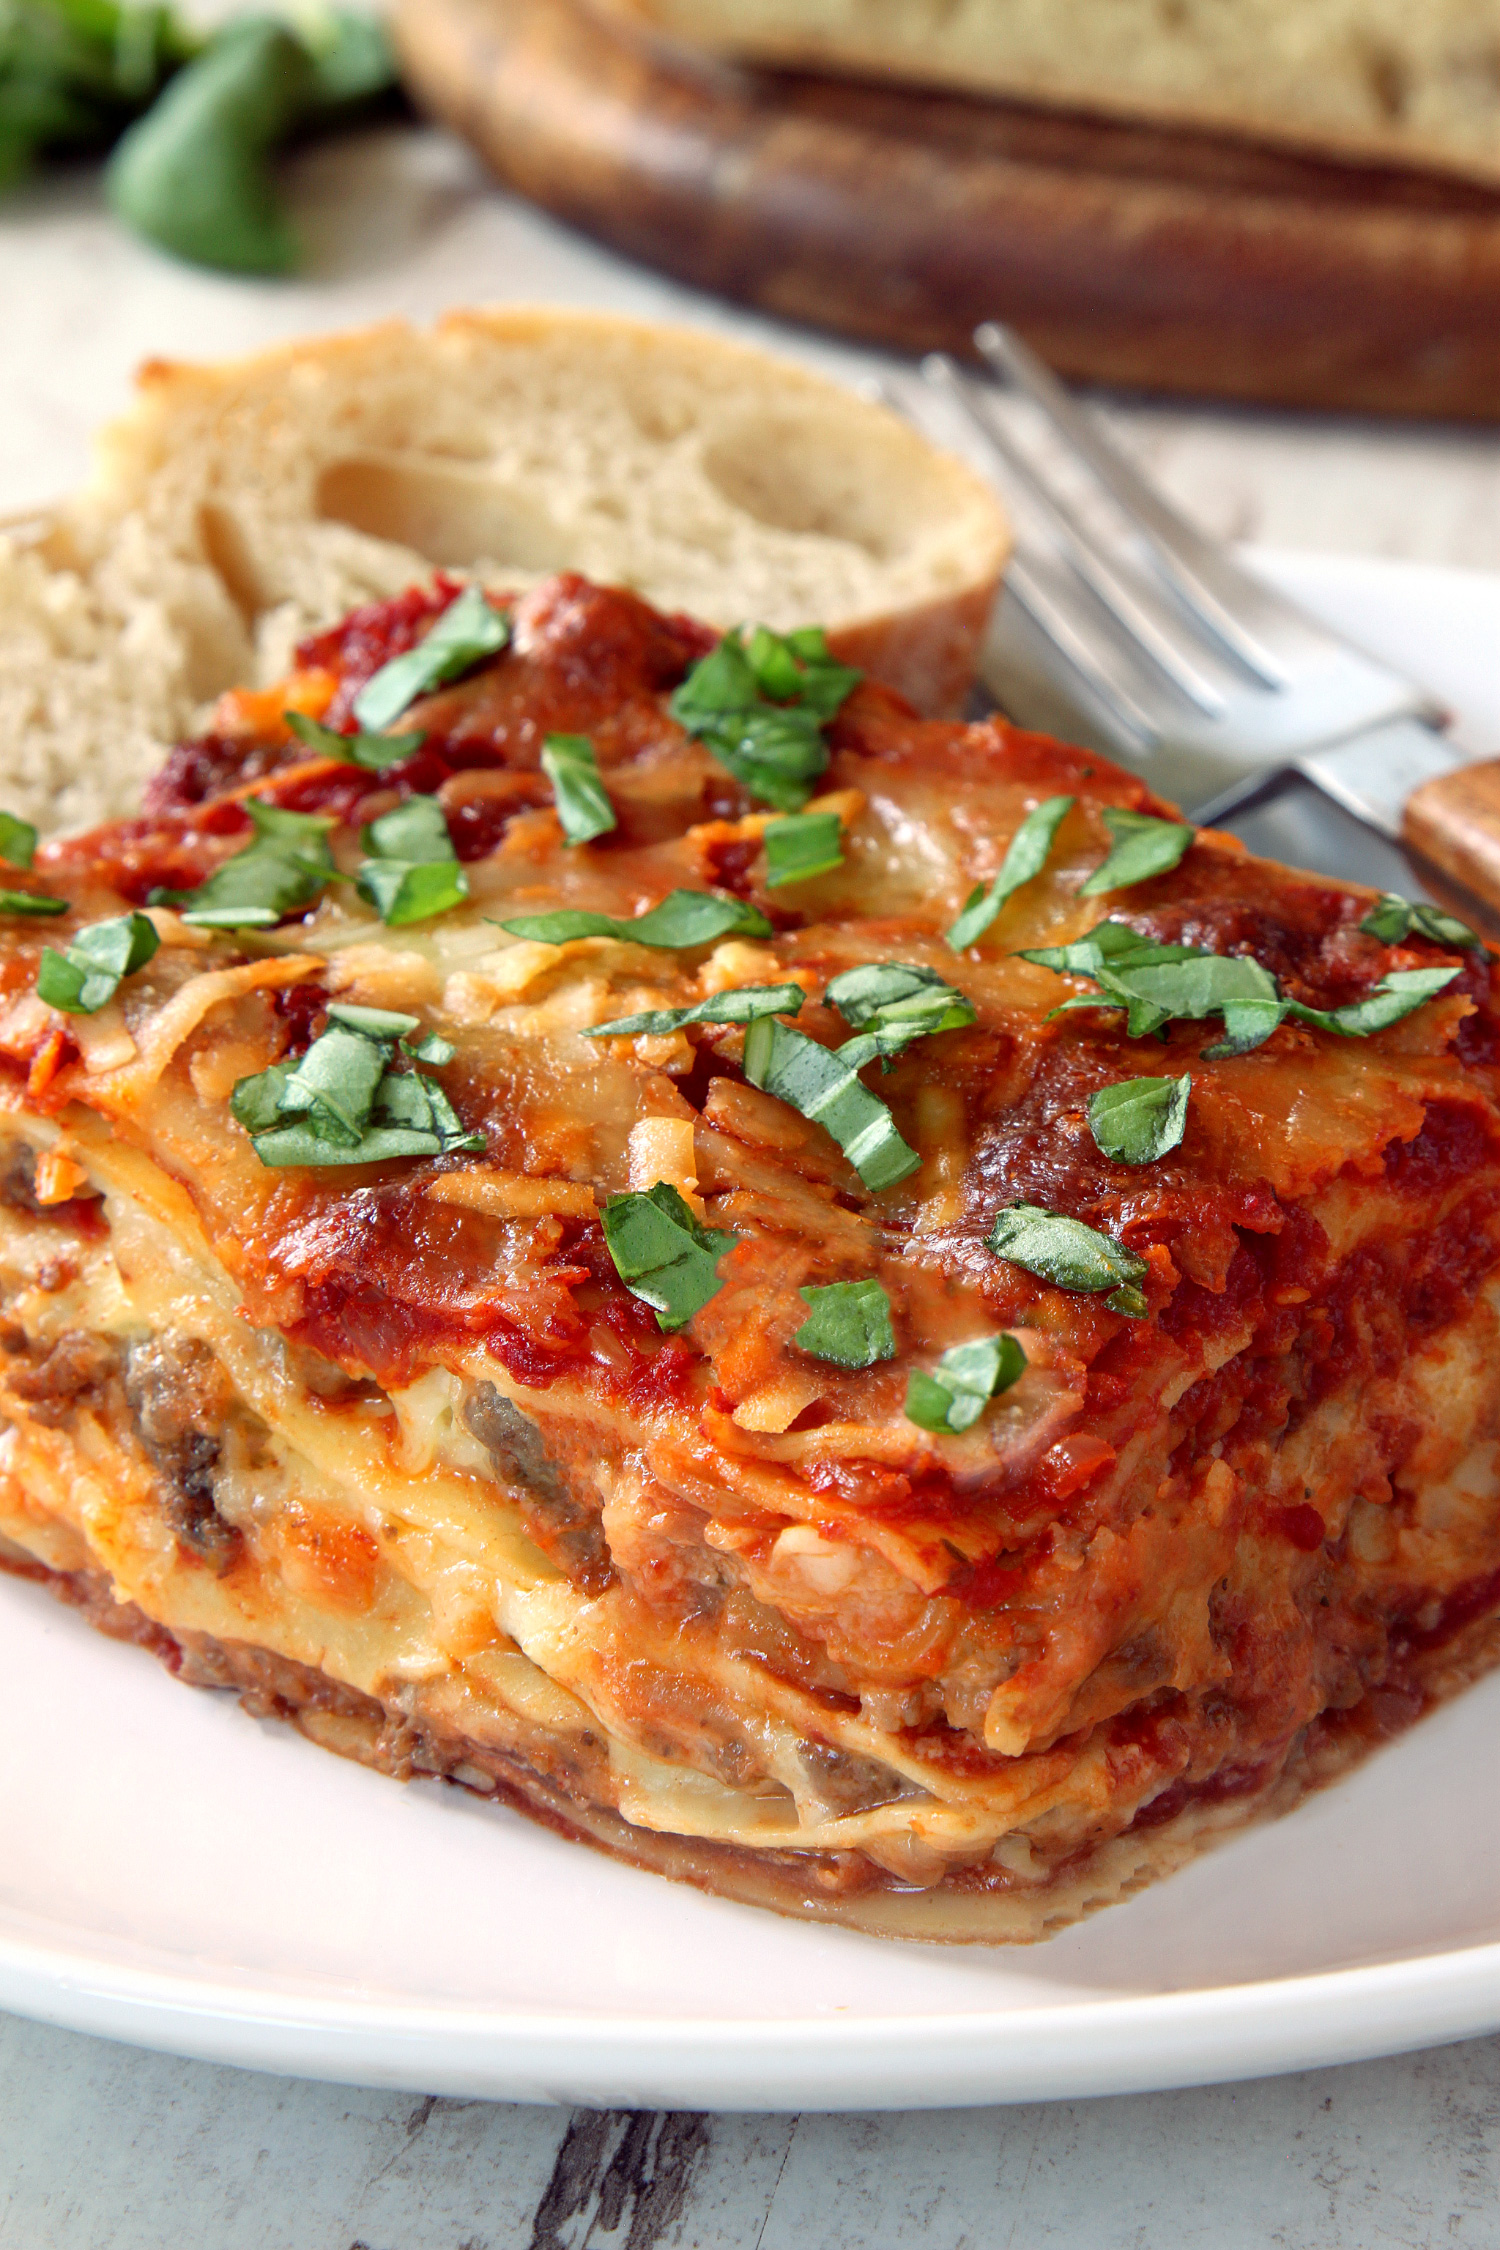 Classic homemade lasagna gluten free whole wheat options for Different kinds of lasagna recipes